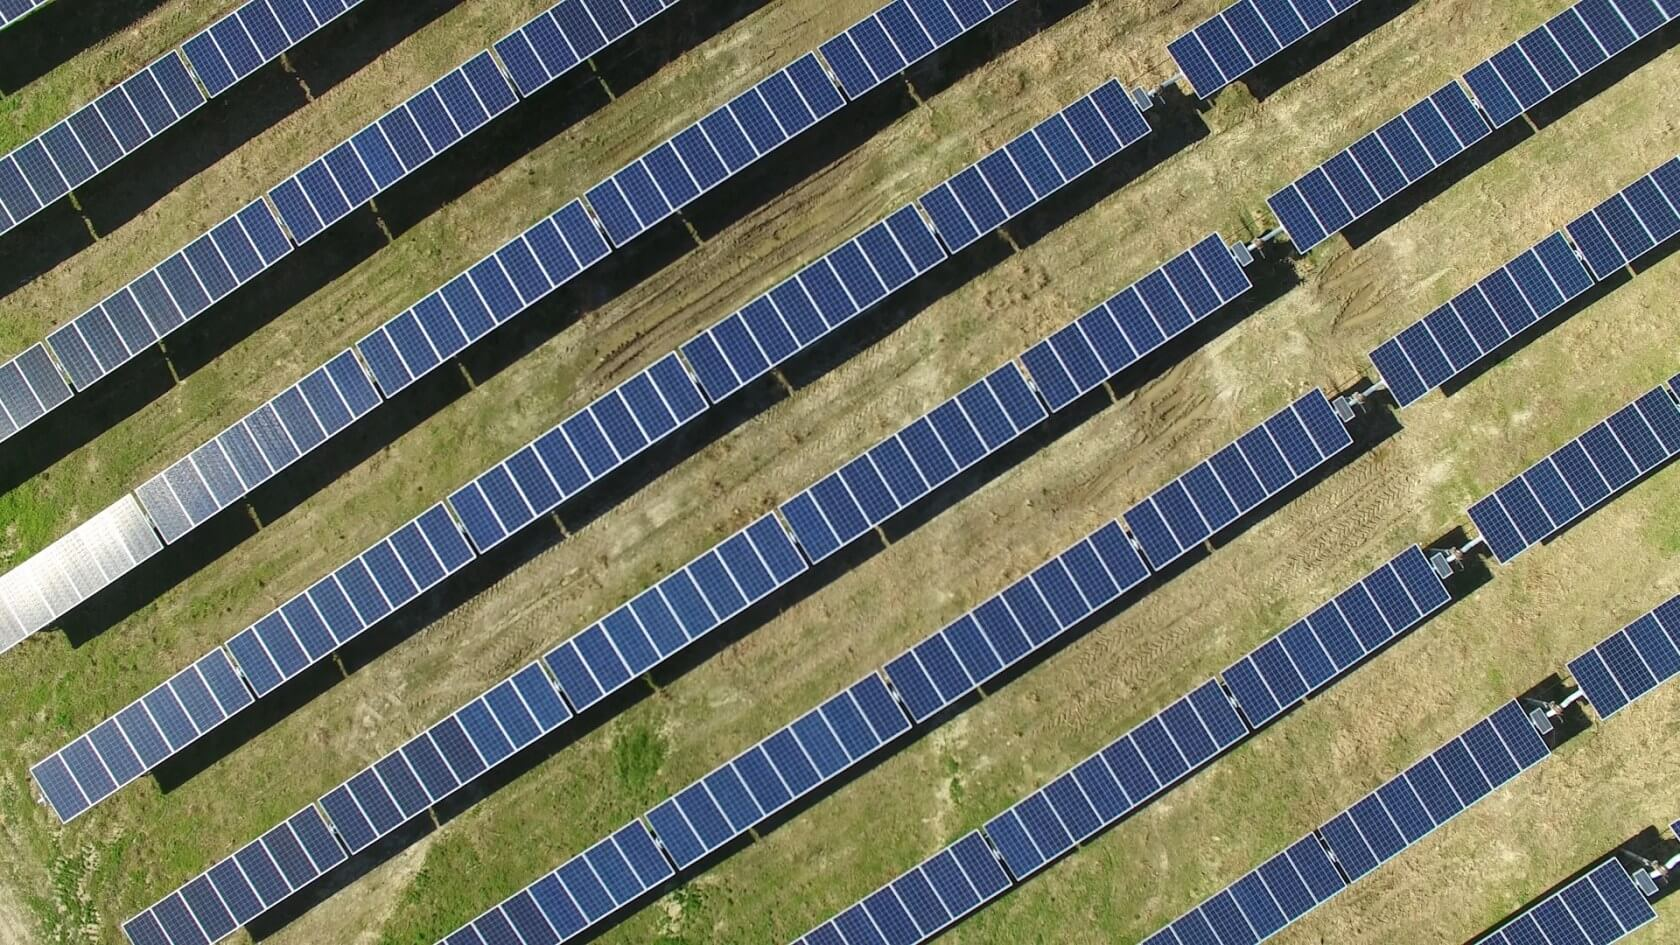 Amazon plans to build wind and solar farms in Virginia and Ireland